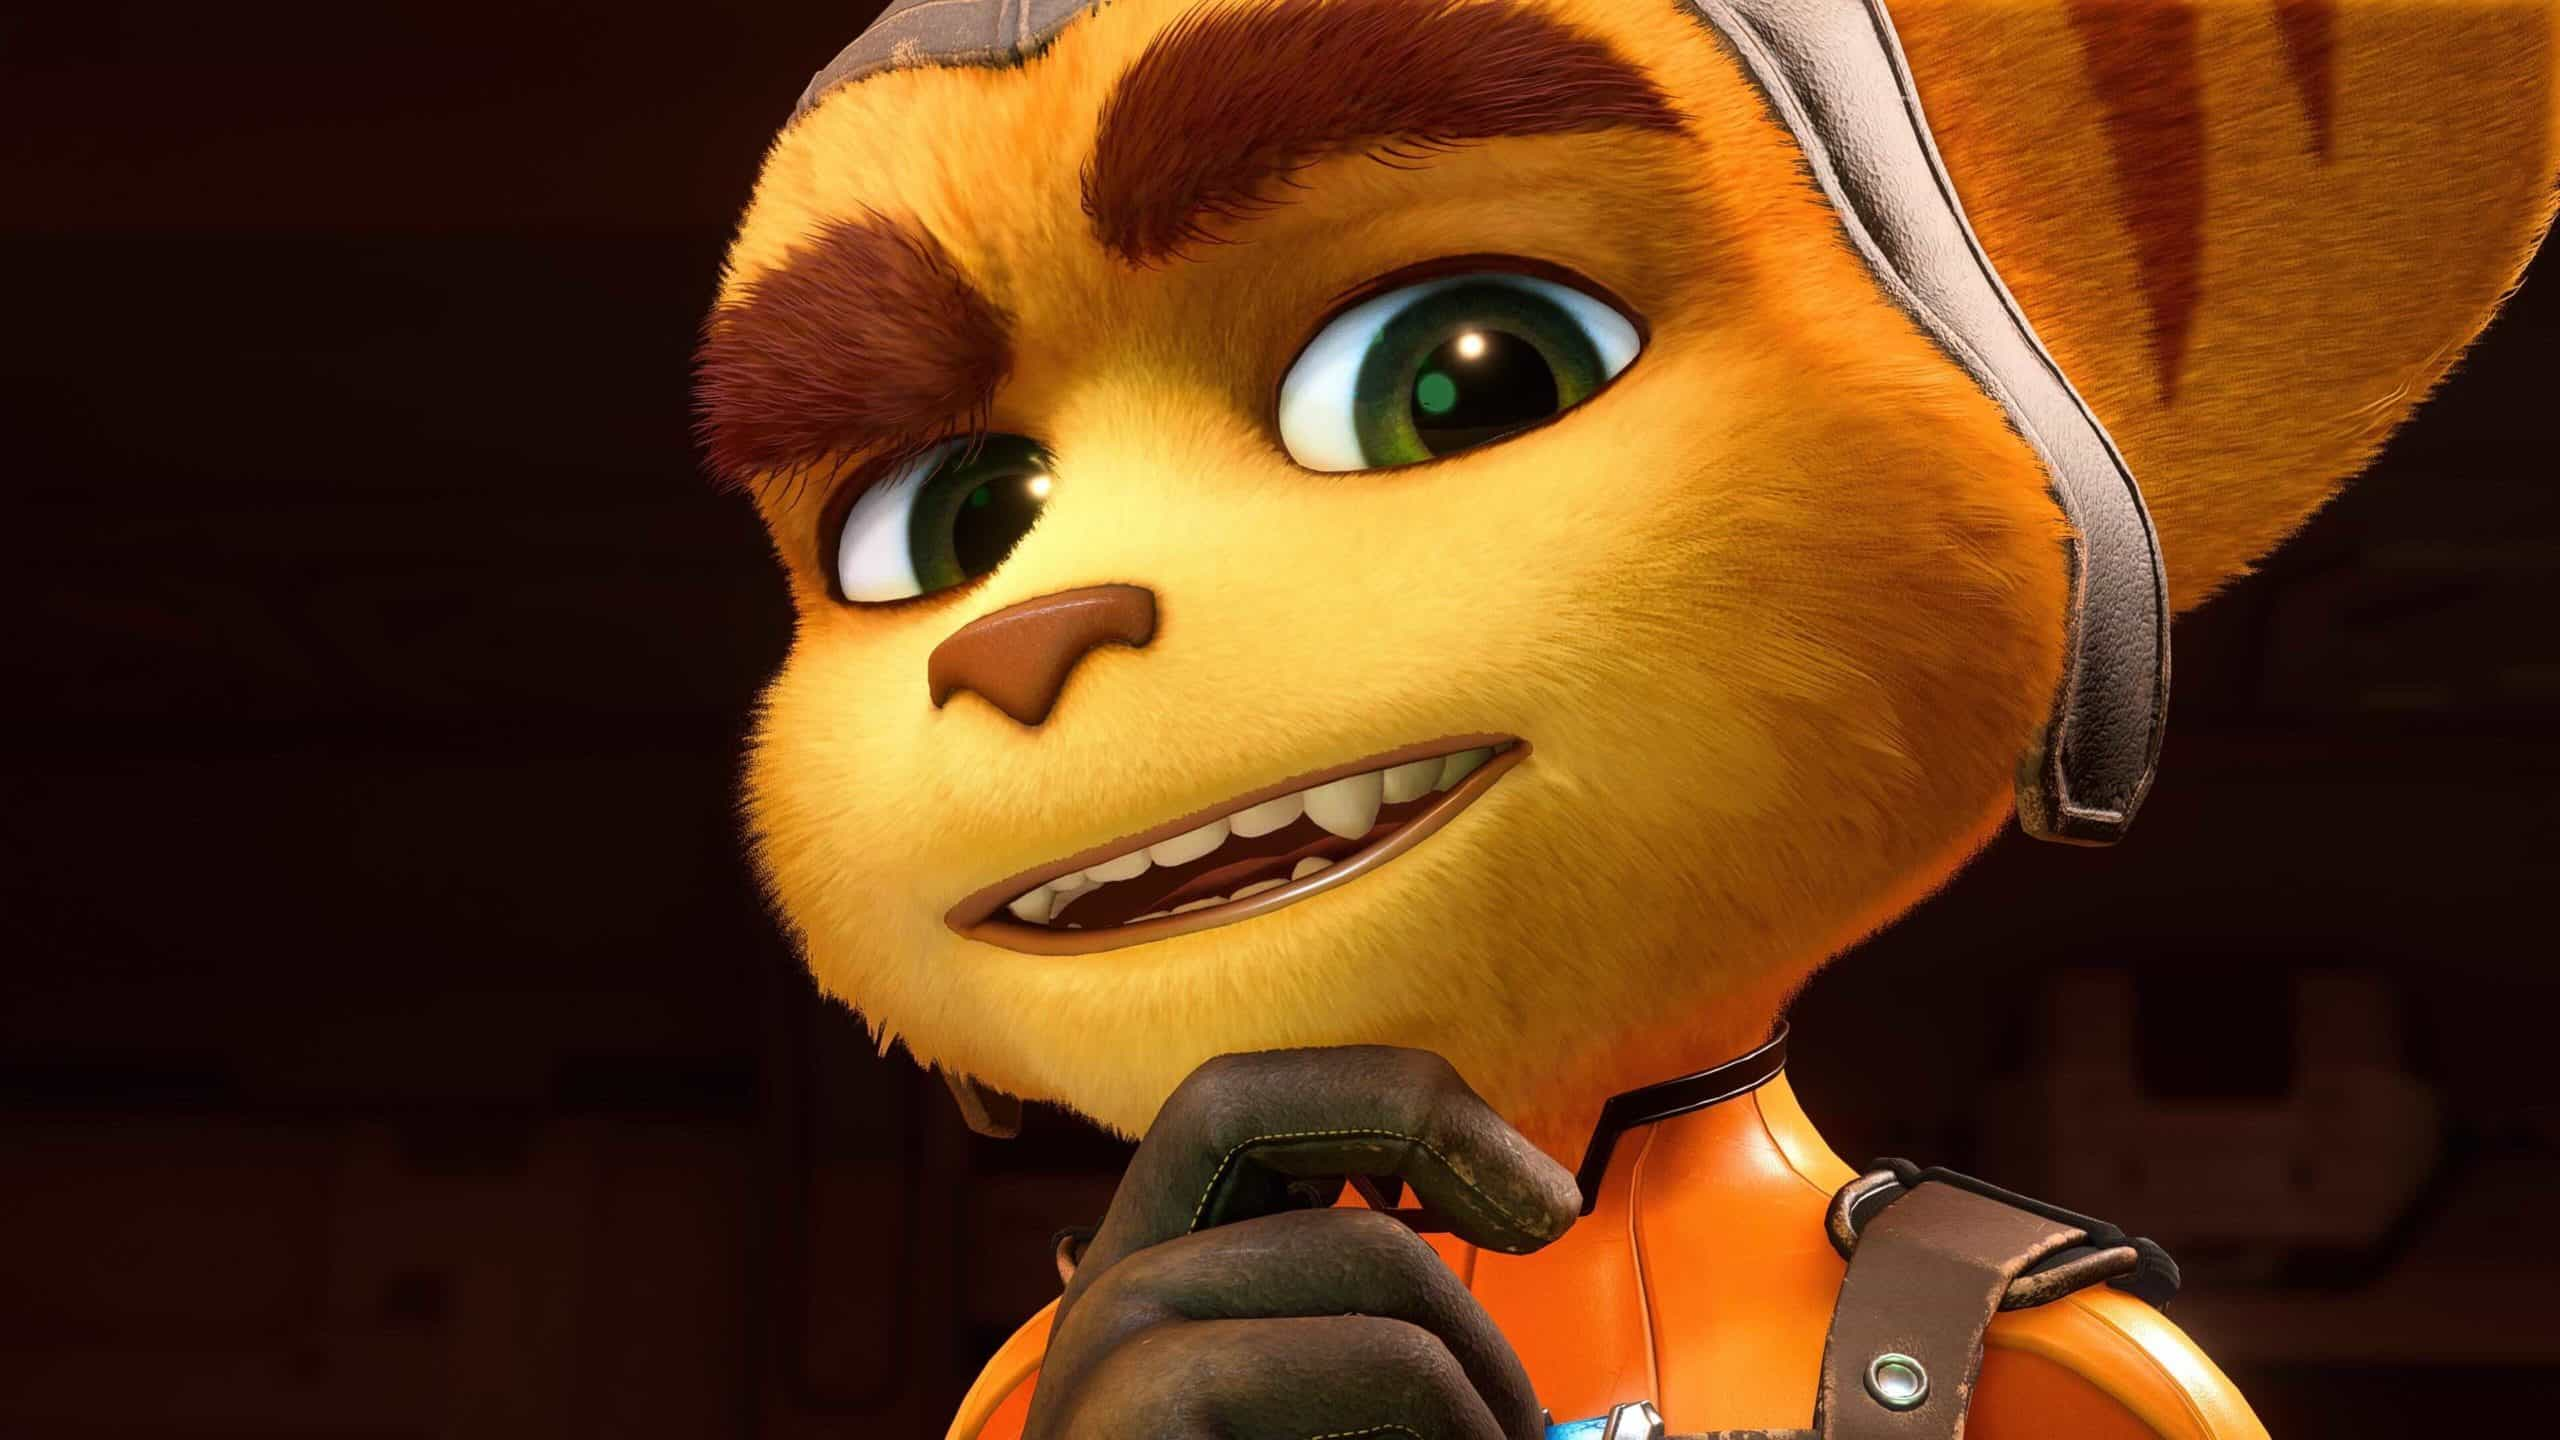 Ratchet and Clank: Rift Apart review: sprong door dimensies